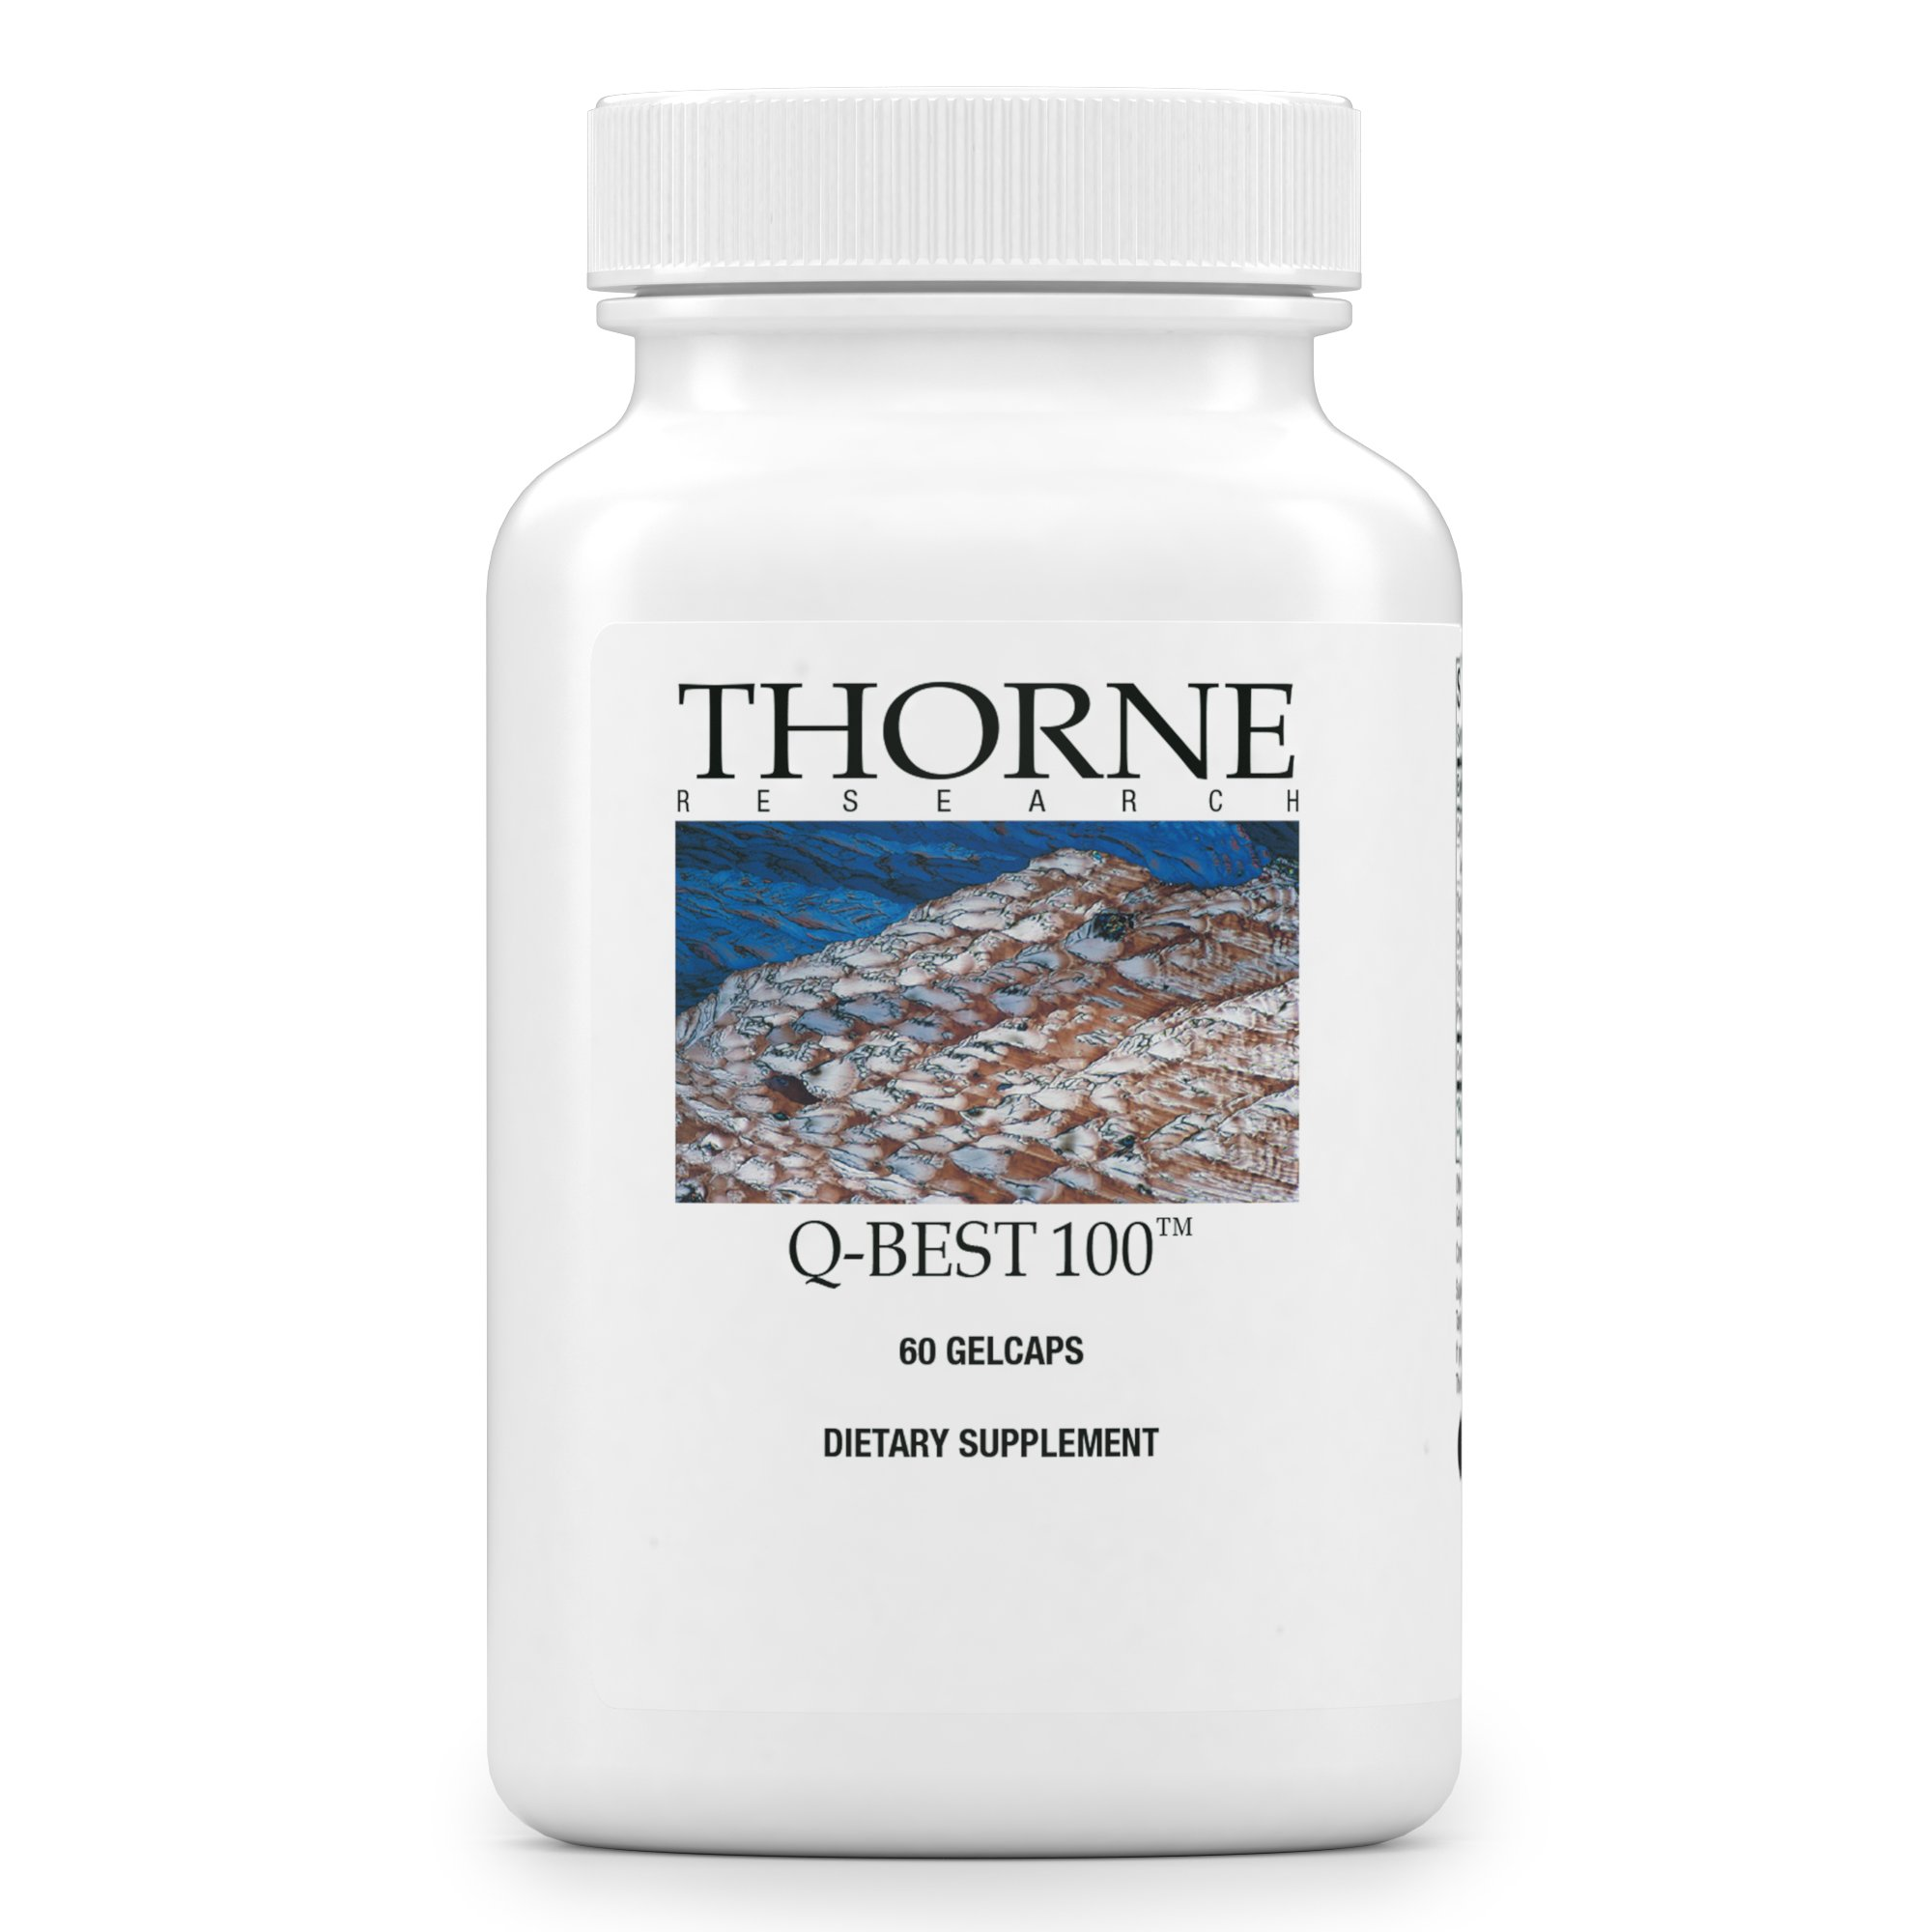 Thorne Research - Q-Best 100 - Patented Crystal-Free CoQ10 Supplement for Heart Health and Cellular Energy Production - 60 Gelcaps